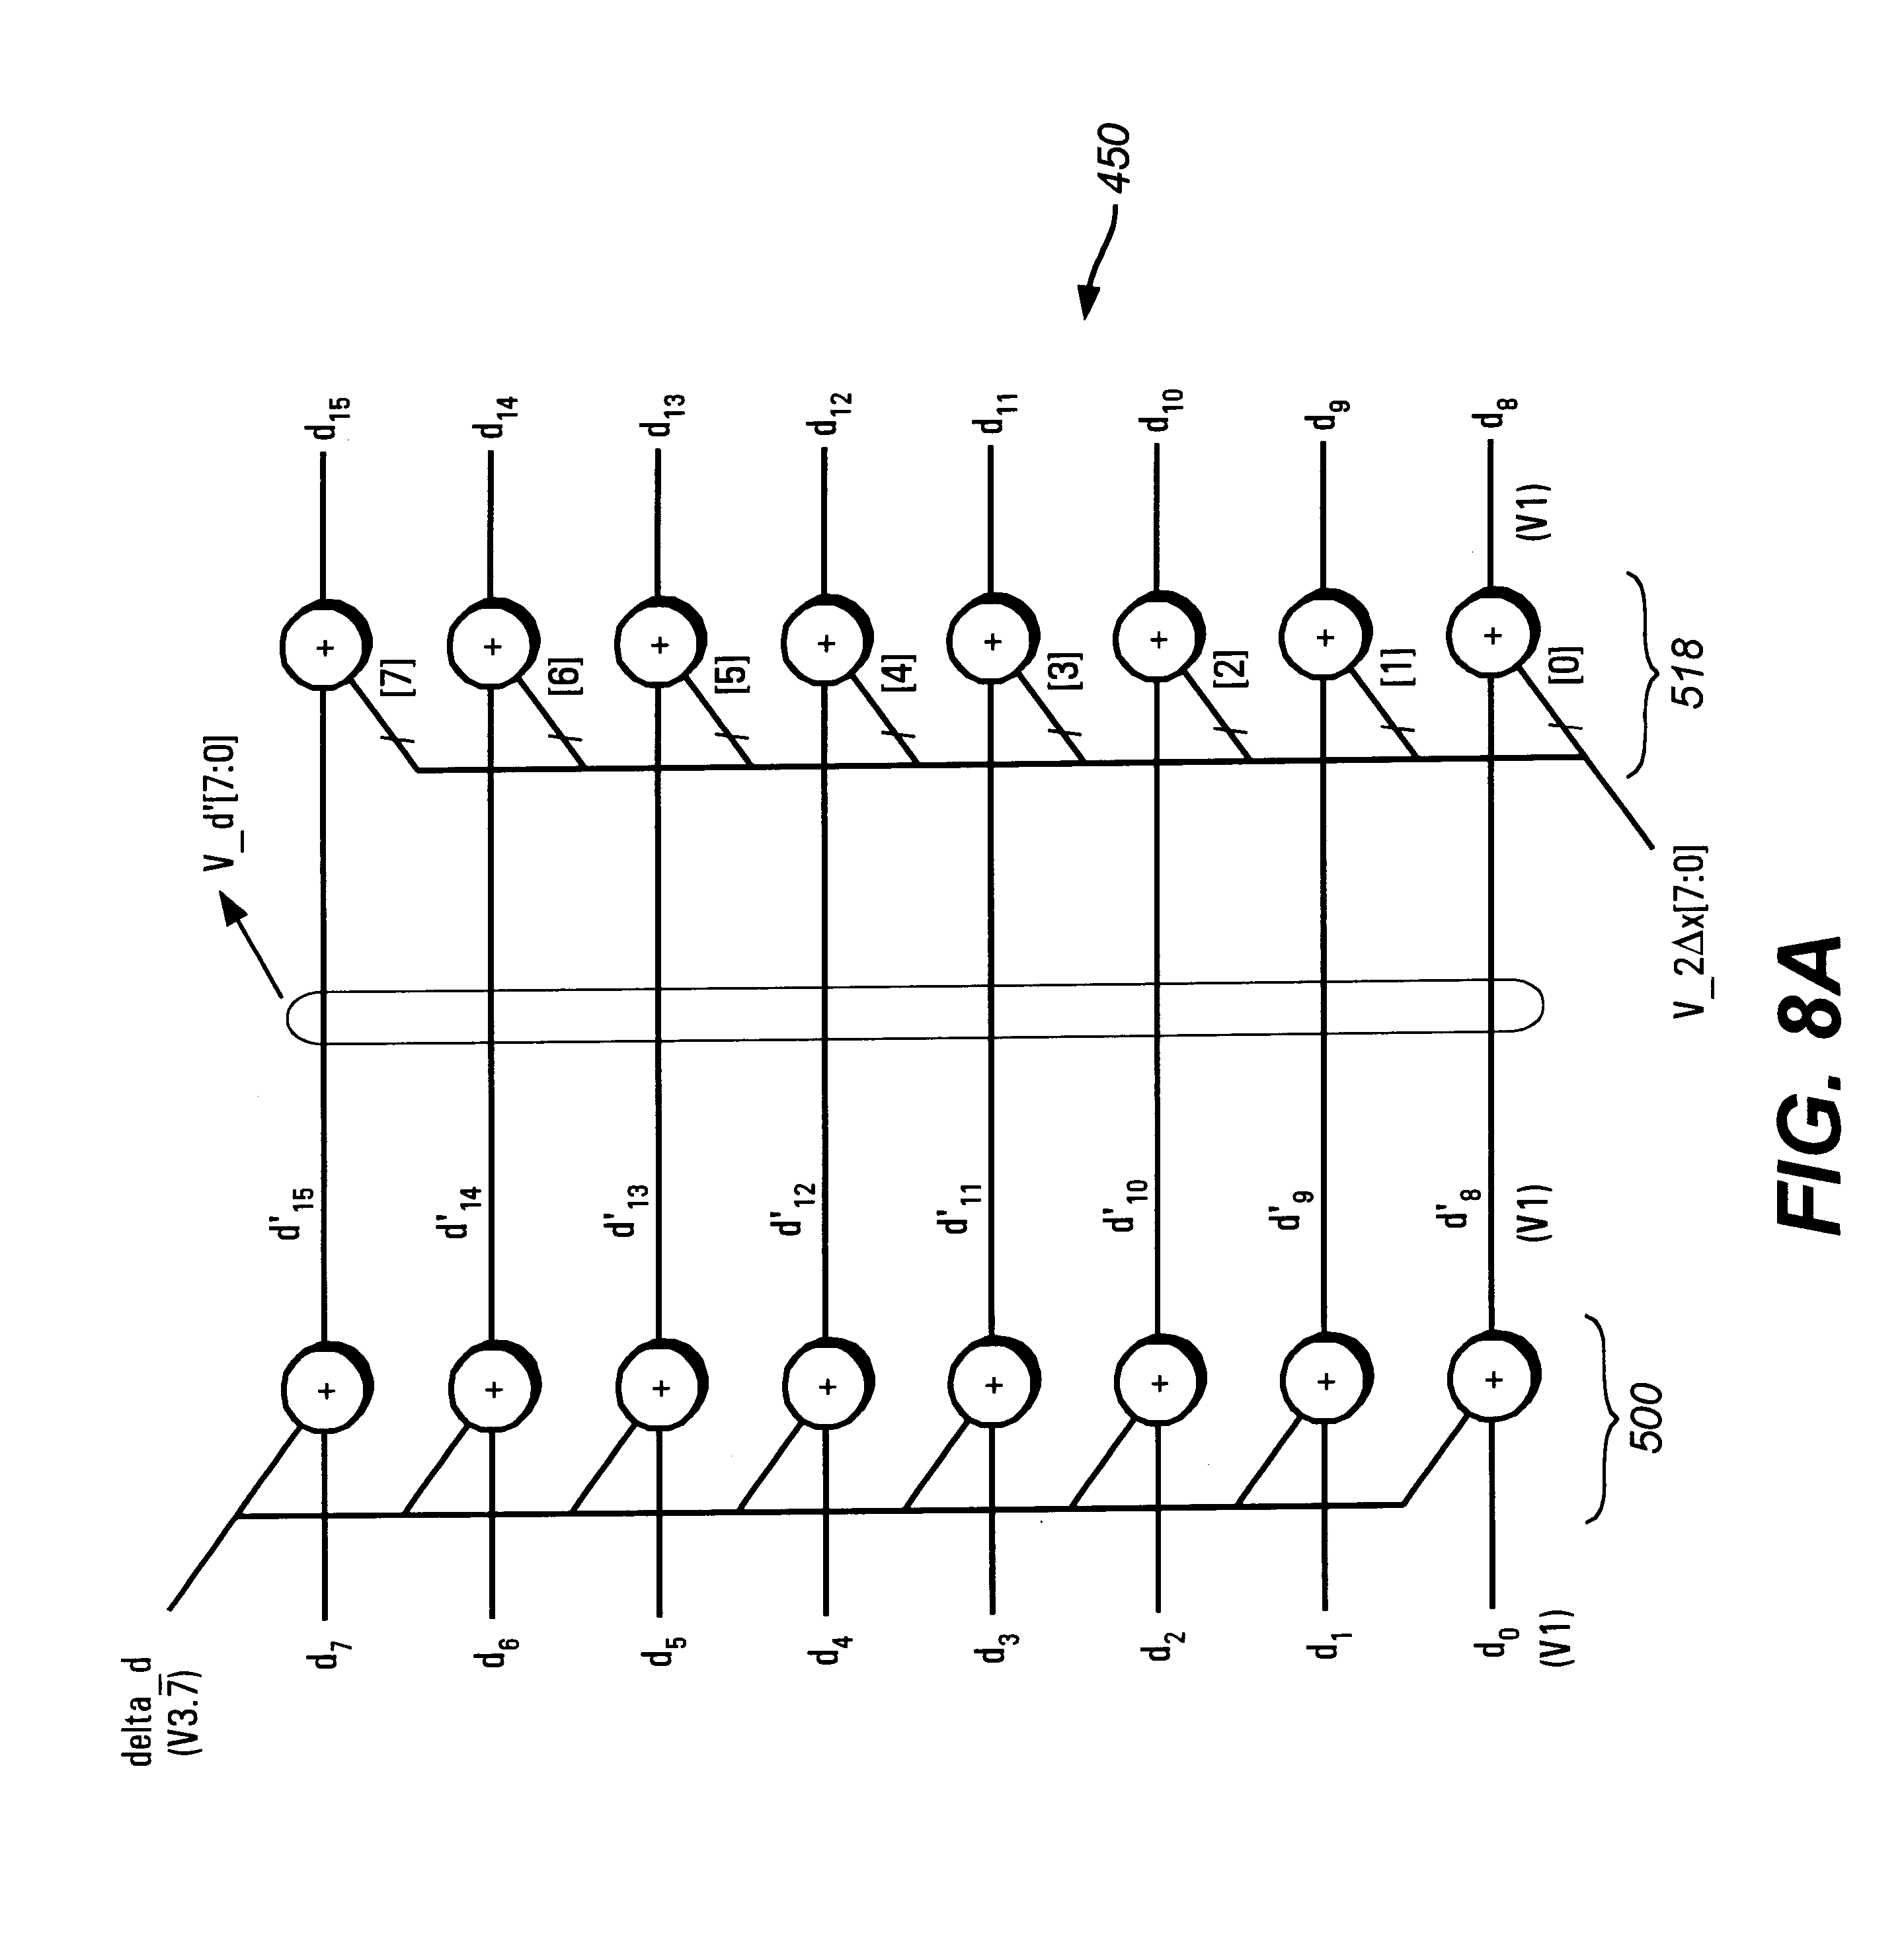 Parallel Version Of Line Drawing Algorithm : Patent us line drawing using operand routing and